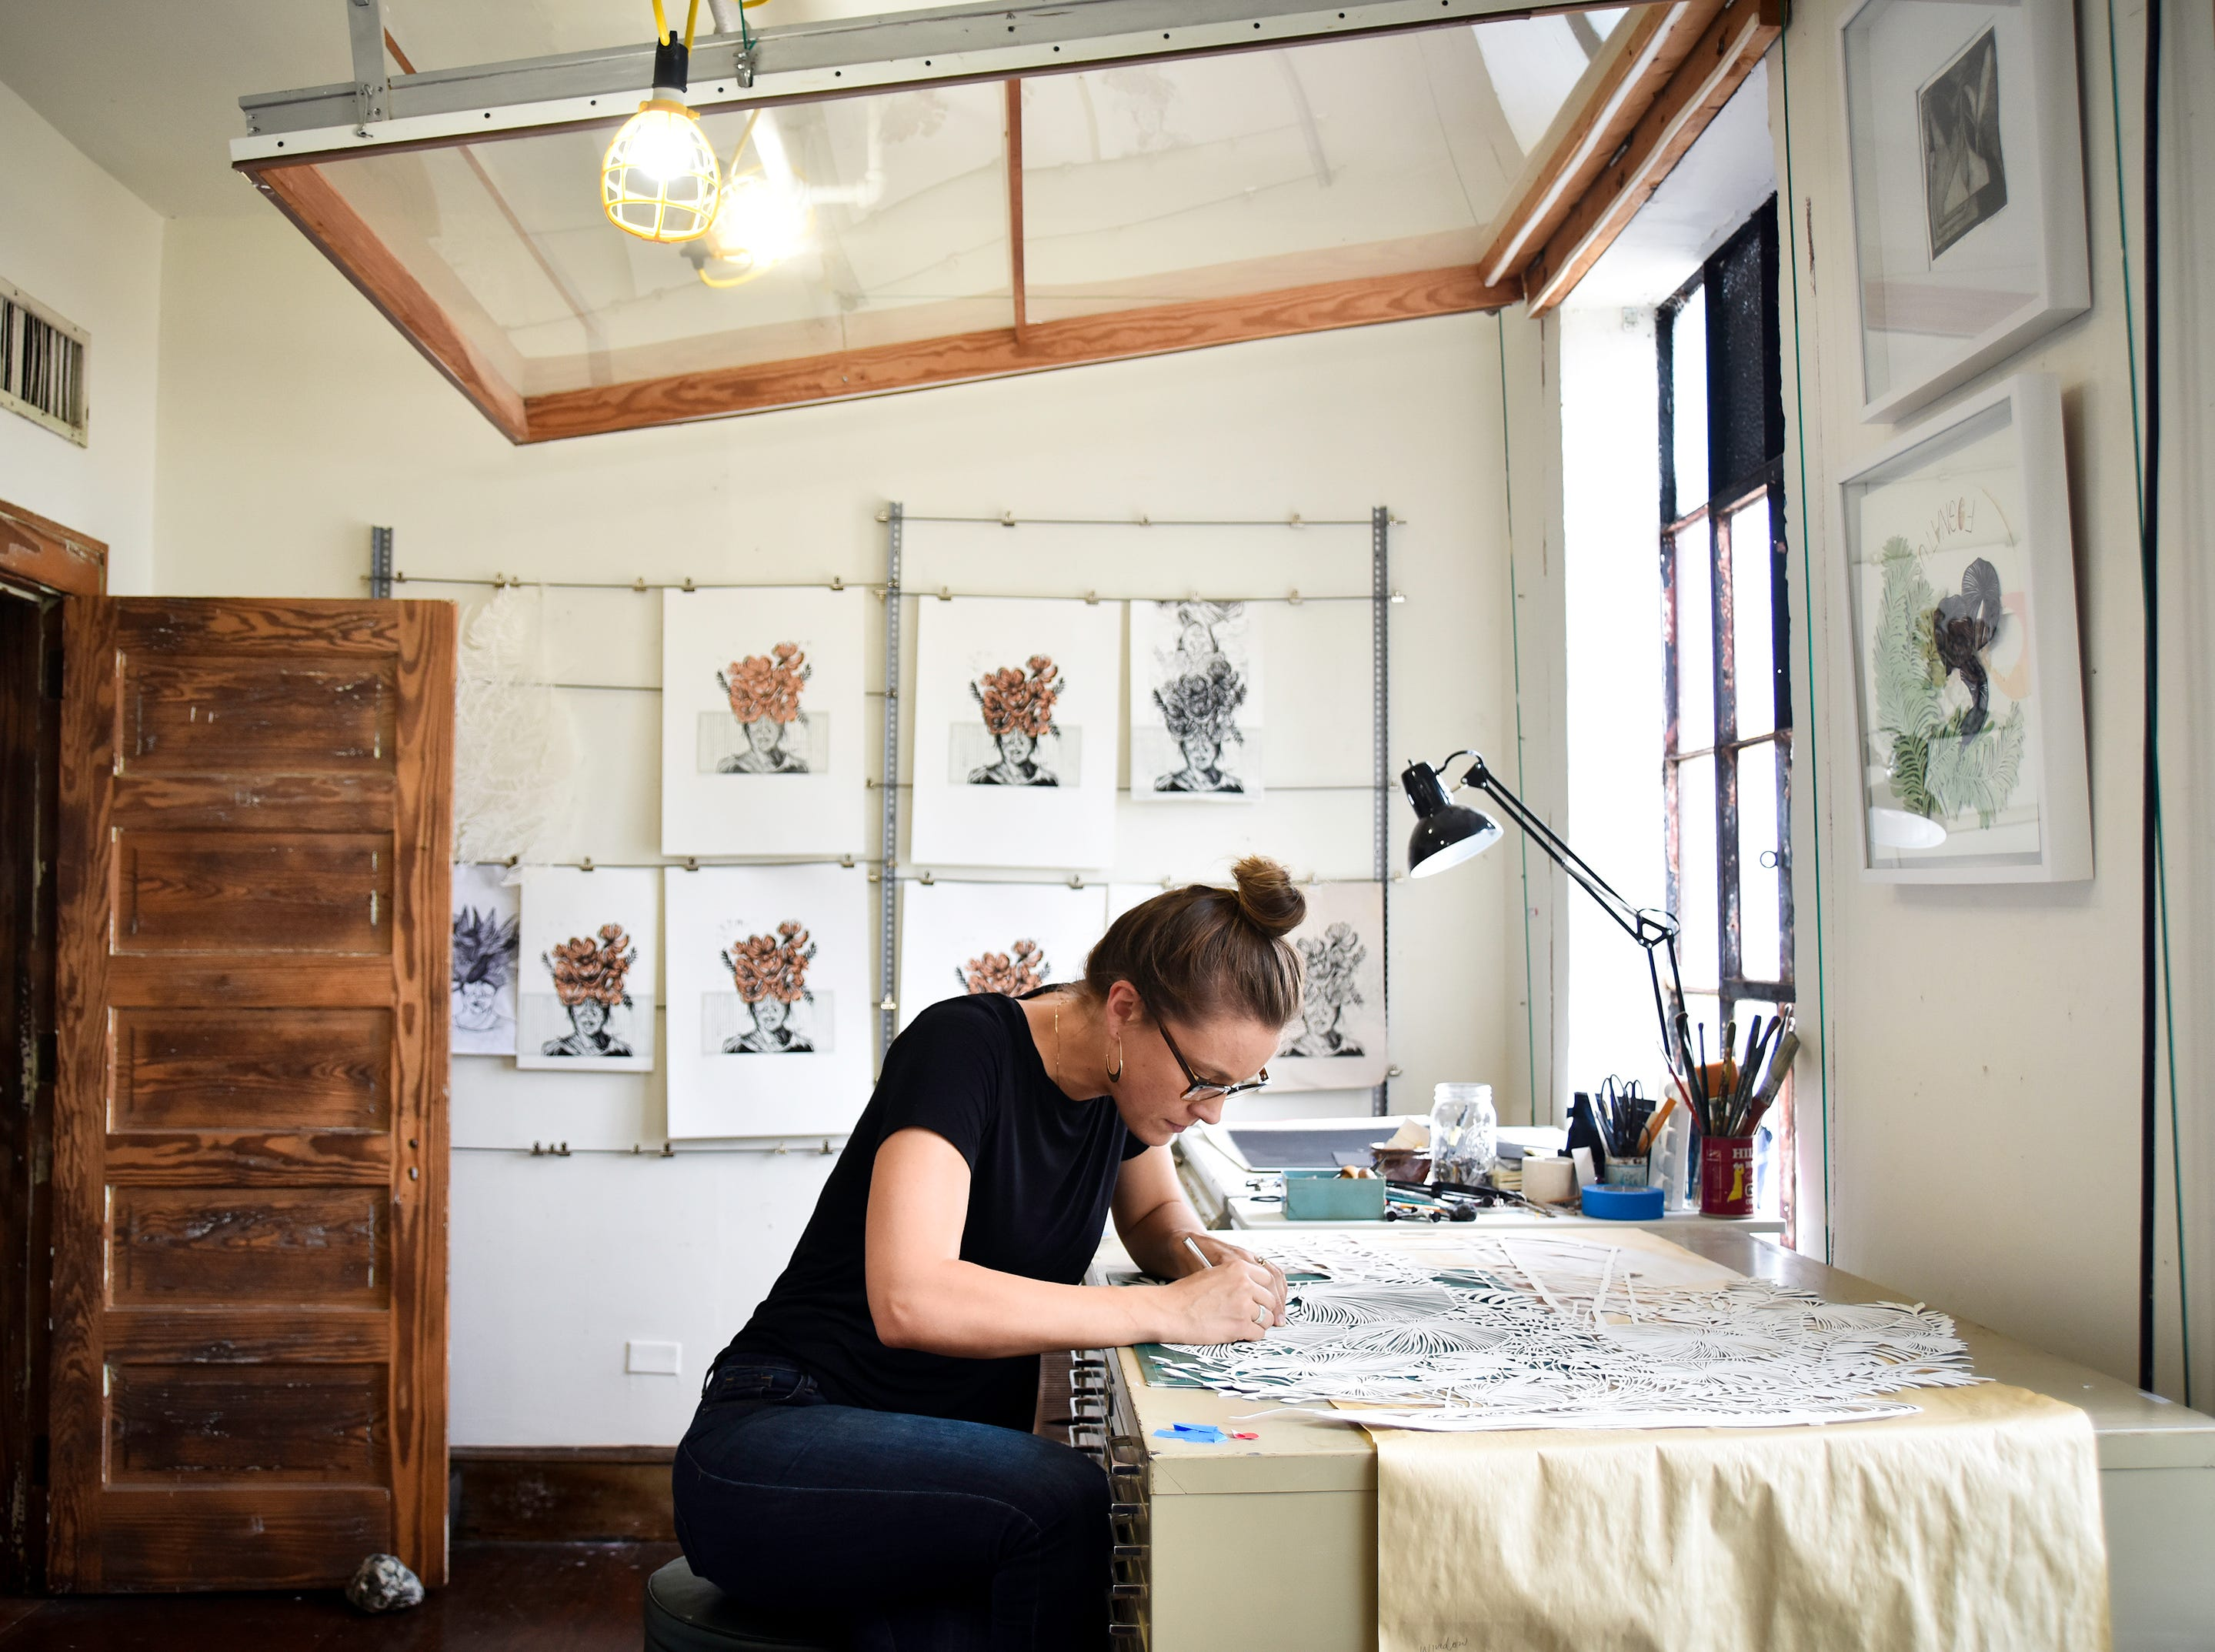 Artist Elizabeth Speaker cuts a design into paper with an X-ACTO knife in her space at Art Bomb Studios in the West Village of Greenville.